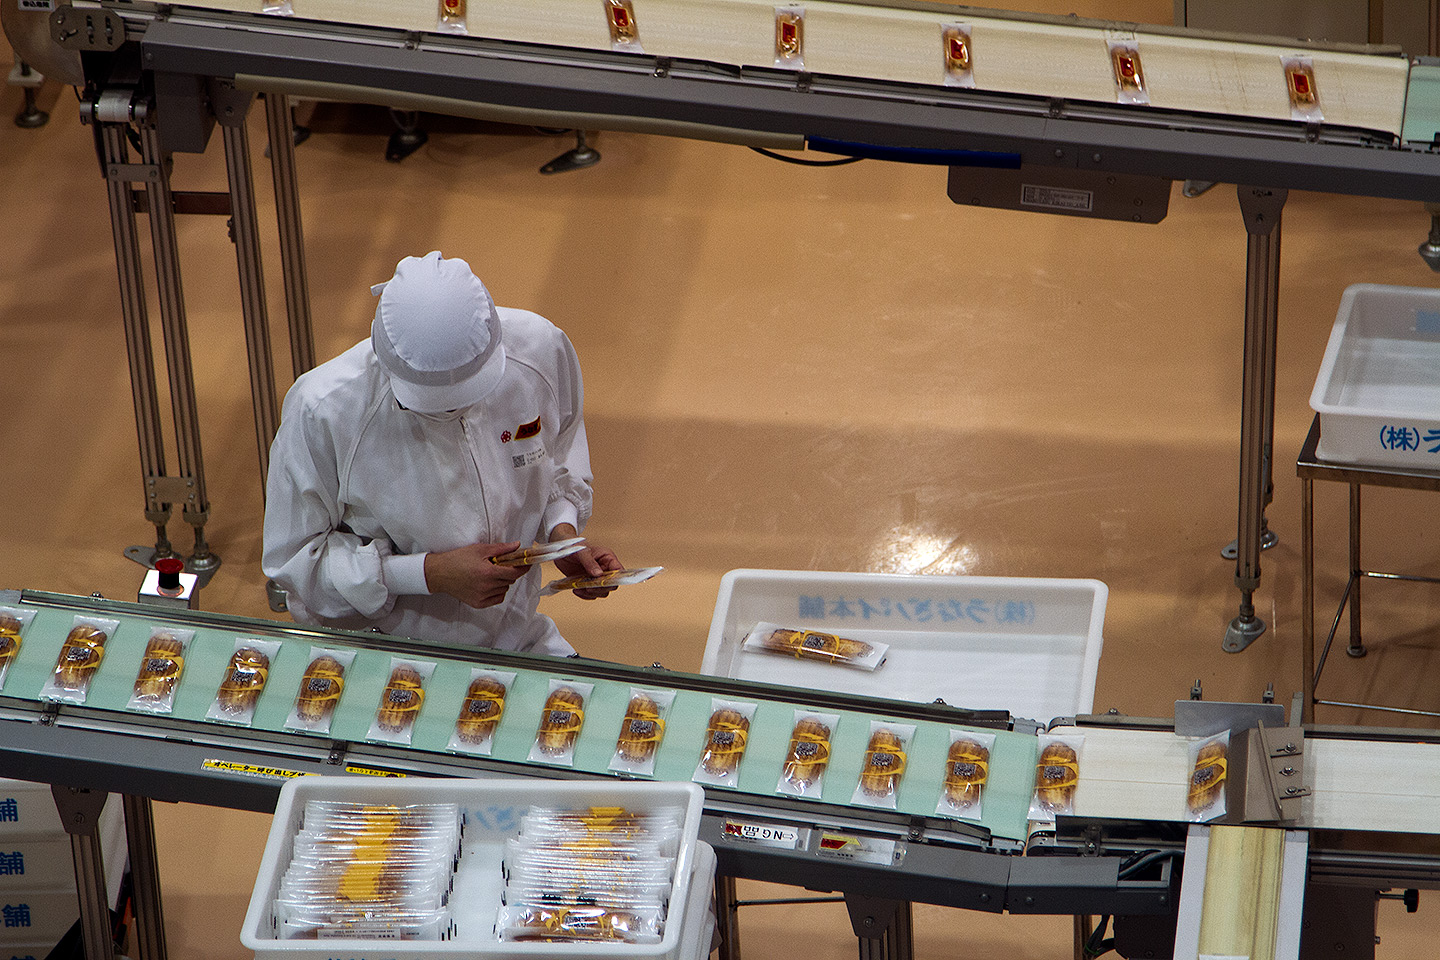 worker inspecting unagi pies on the assembly line